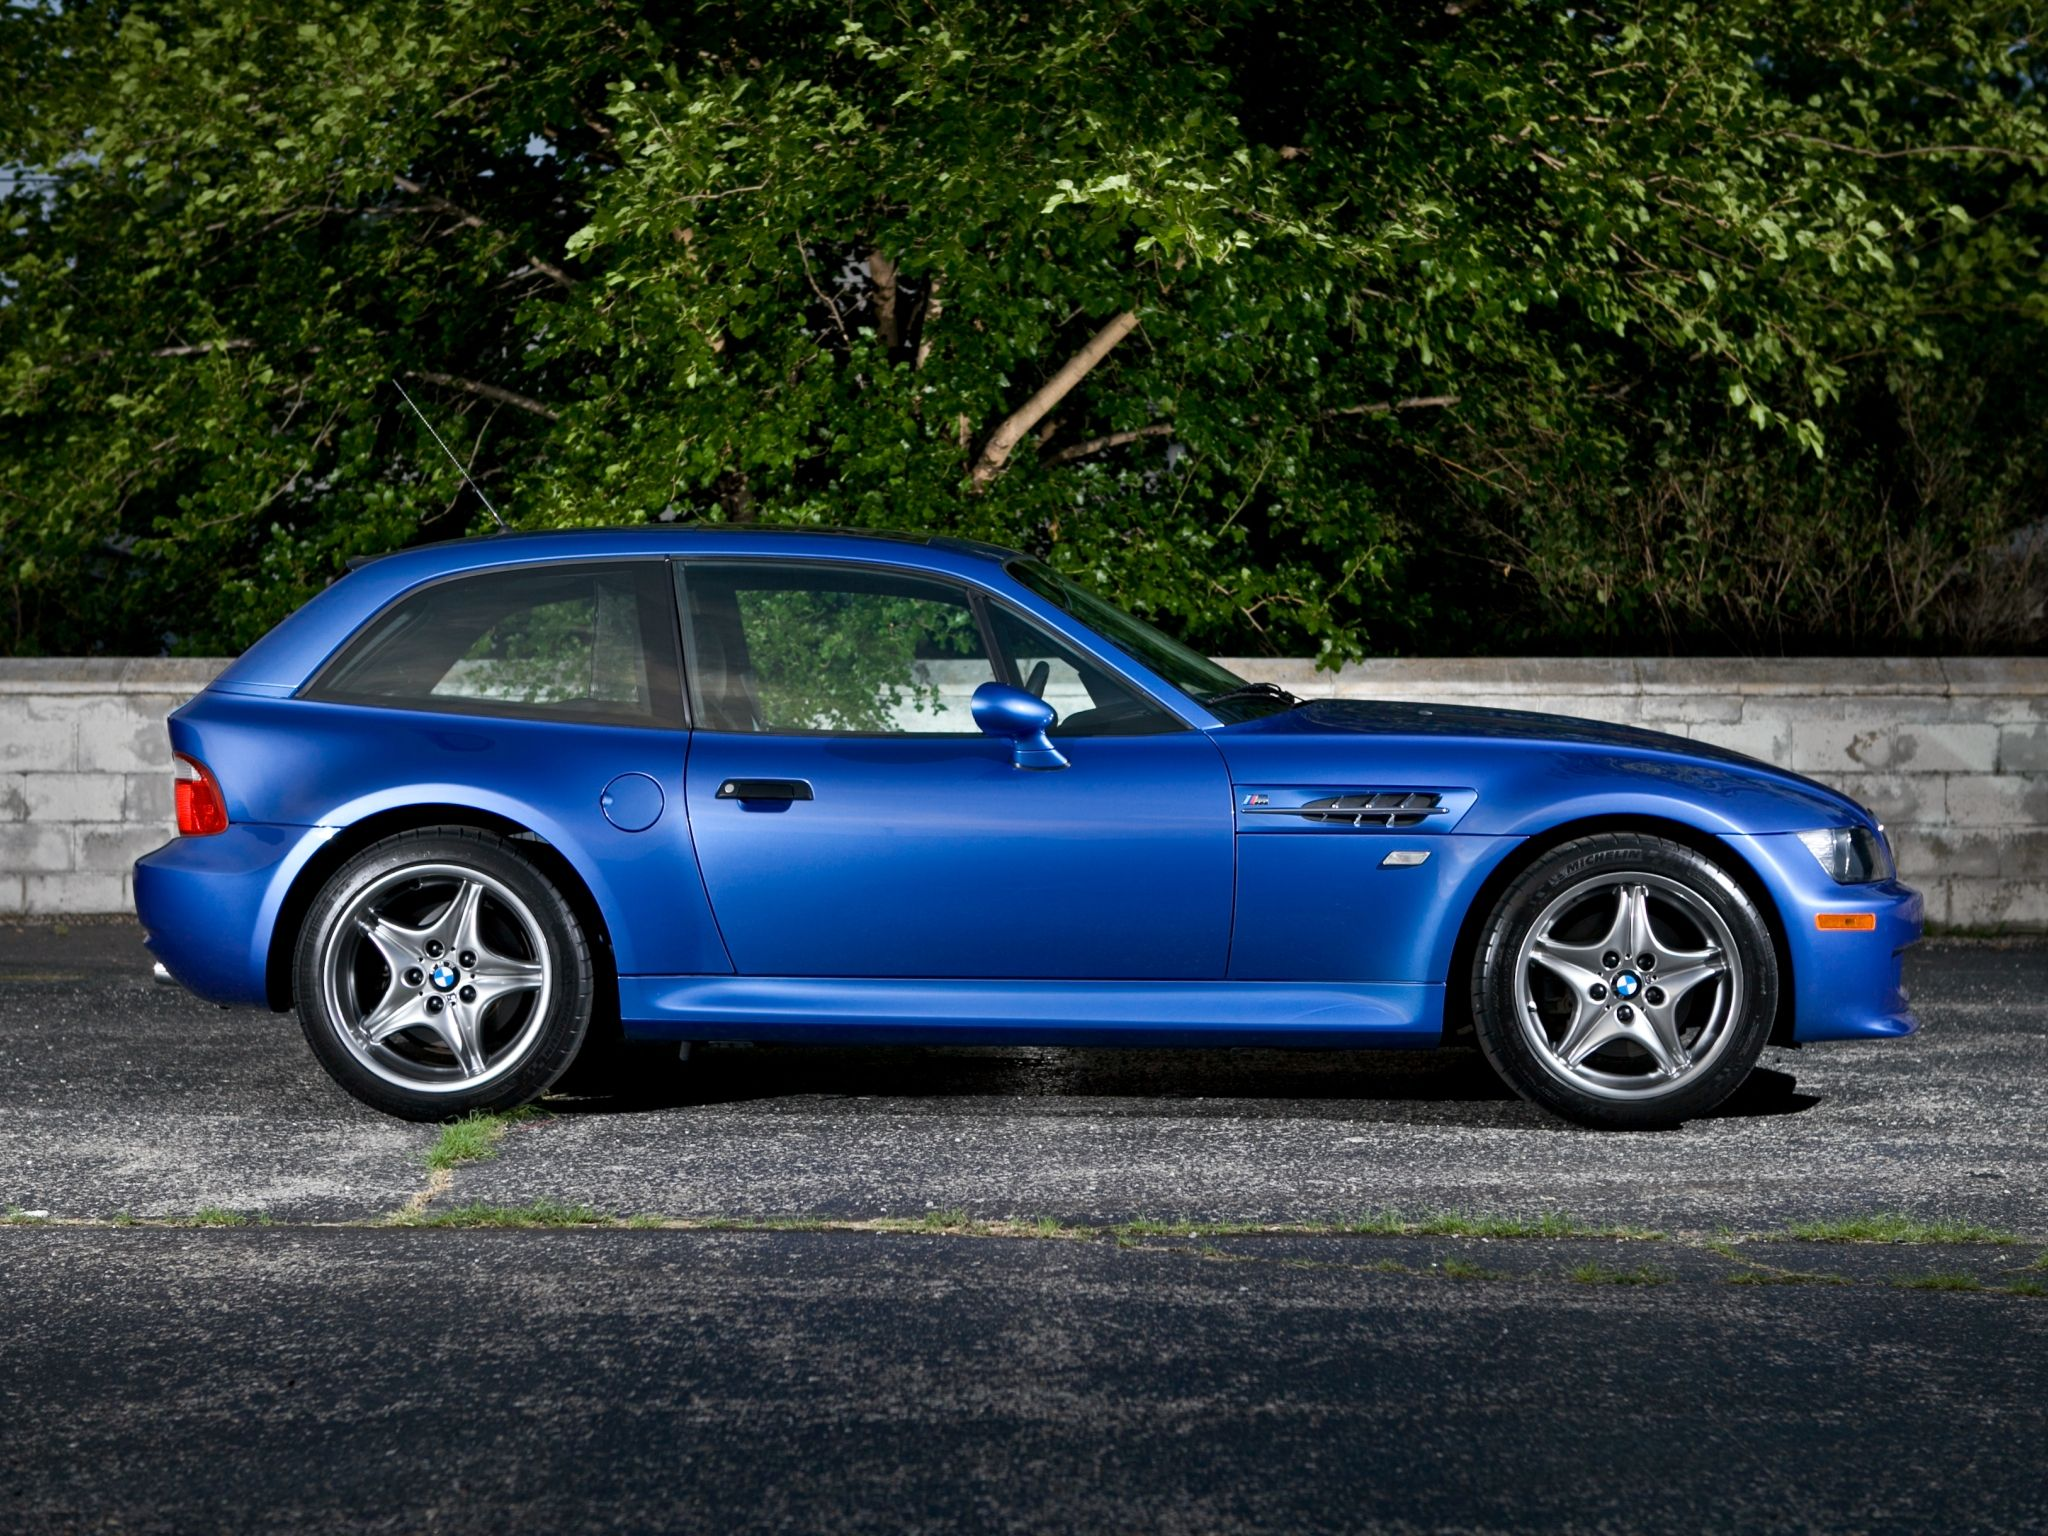 hight resolution of bmw m coupe the ultimate shooting brake and practical sports car built by enthusiastic german engineers m series engine and room for dogs